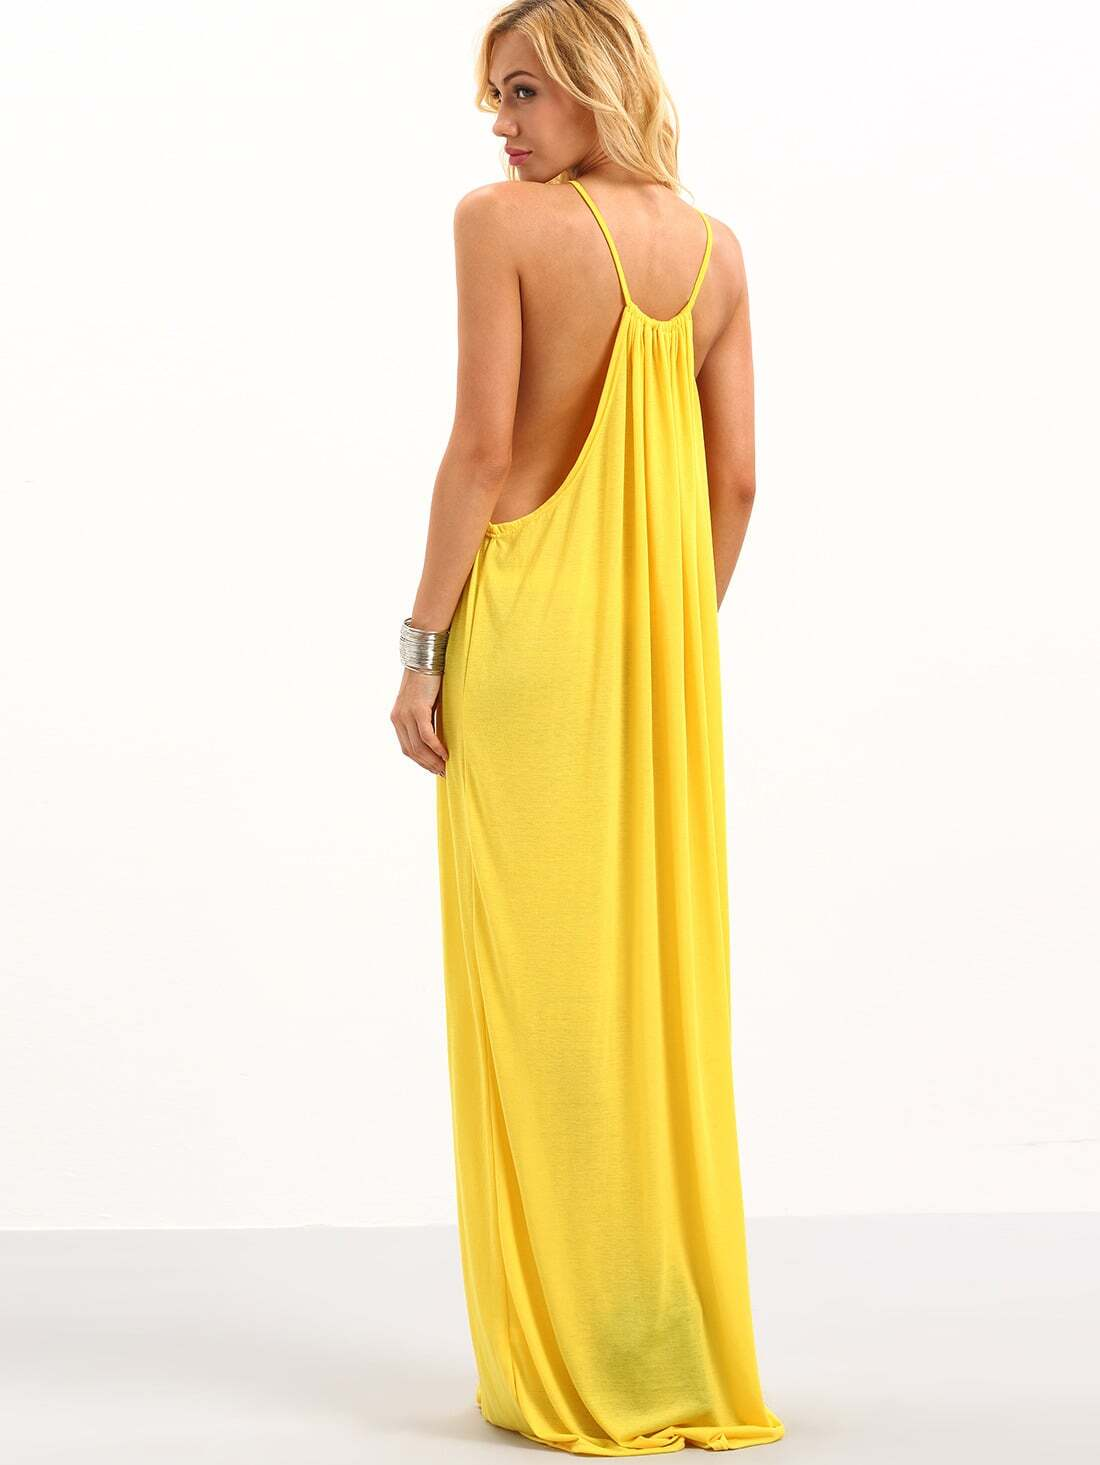 Halter Neck Drop Armhole Loose Fit Dress Yellowfor Women